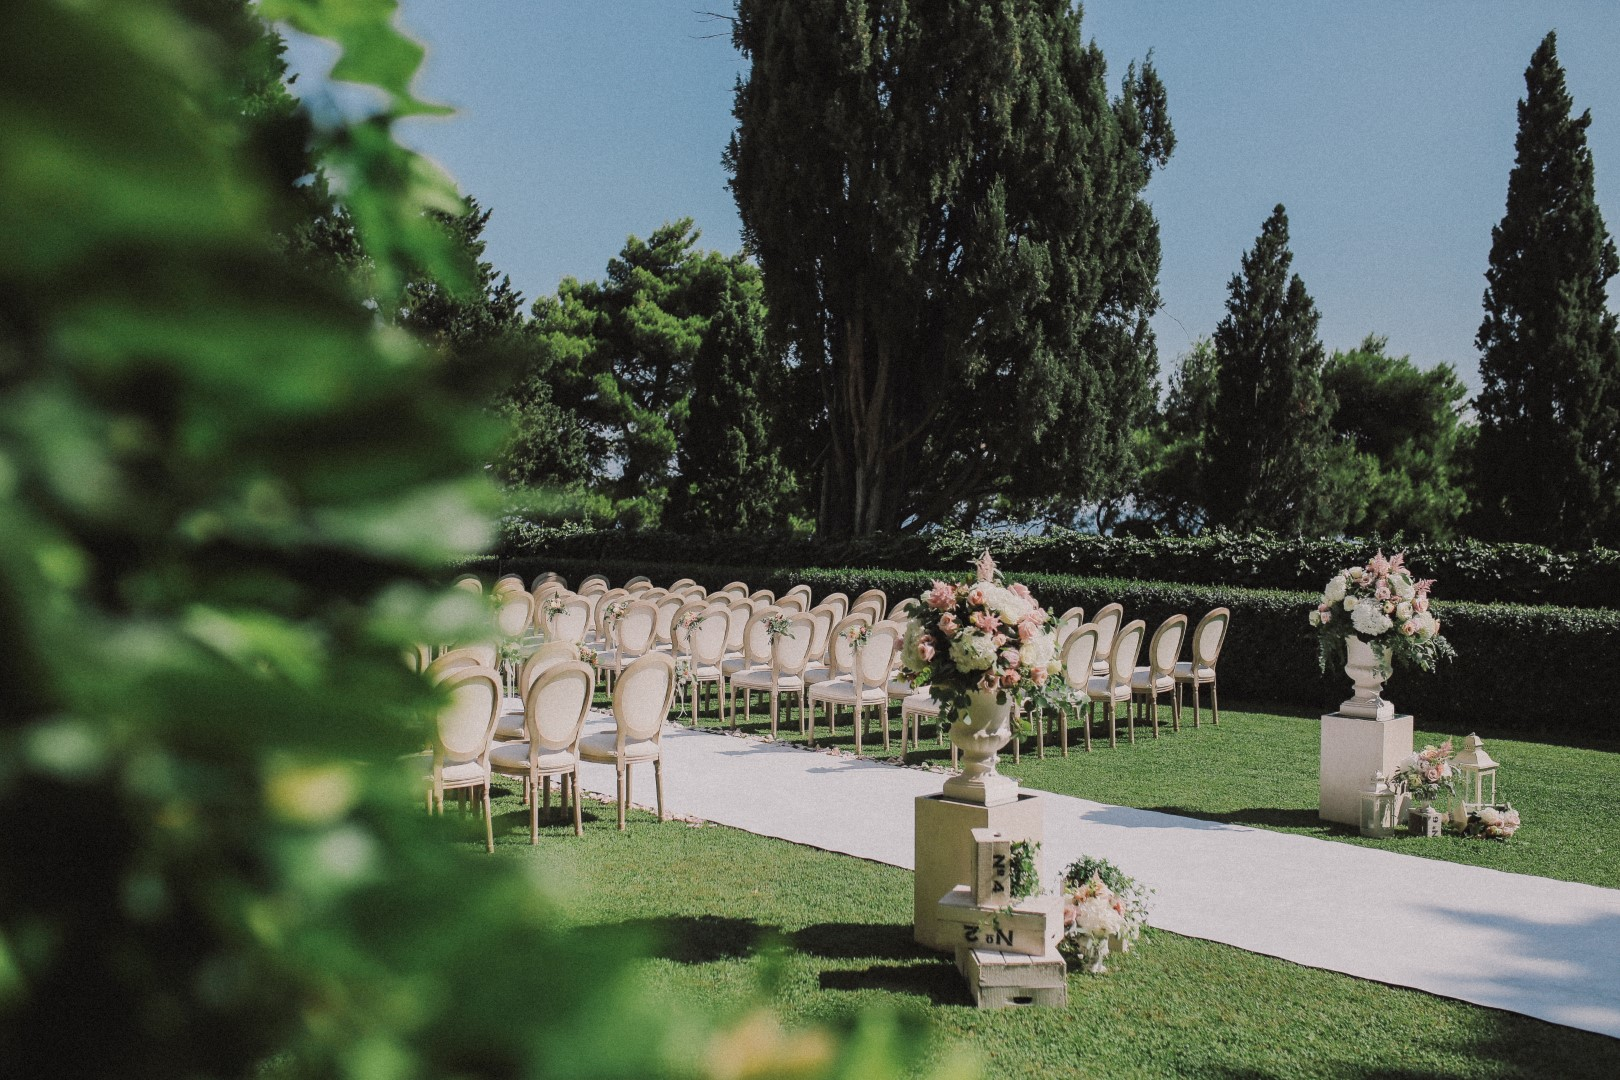 This is a beautiful garden ceremony in Dubrovnik. There is a white carpet and white Louis chairs. Behind the chairs are flower arrangements with a white and pink color theme.